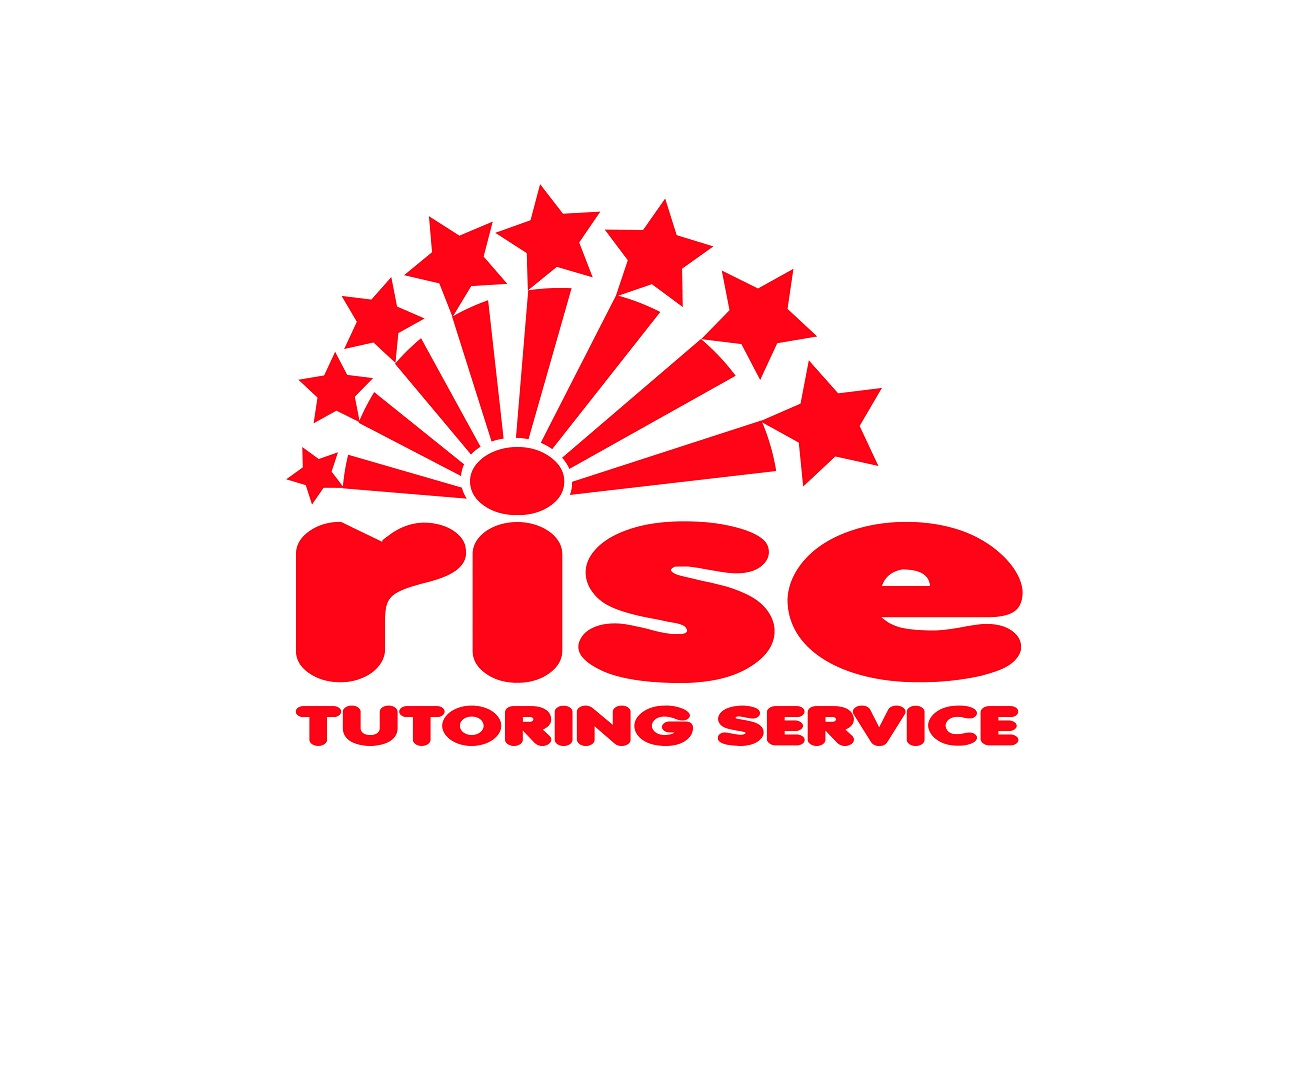 Logo Design by jhunzkie24 - Entry No. 115 in the Logo Design Contest Imaginative Logo Design for Rise Tutoring Service.